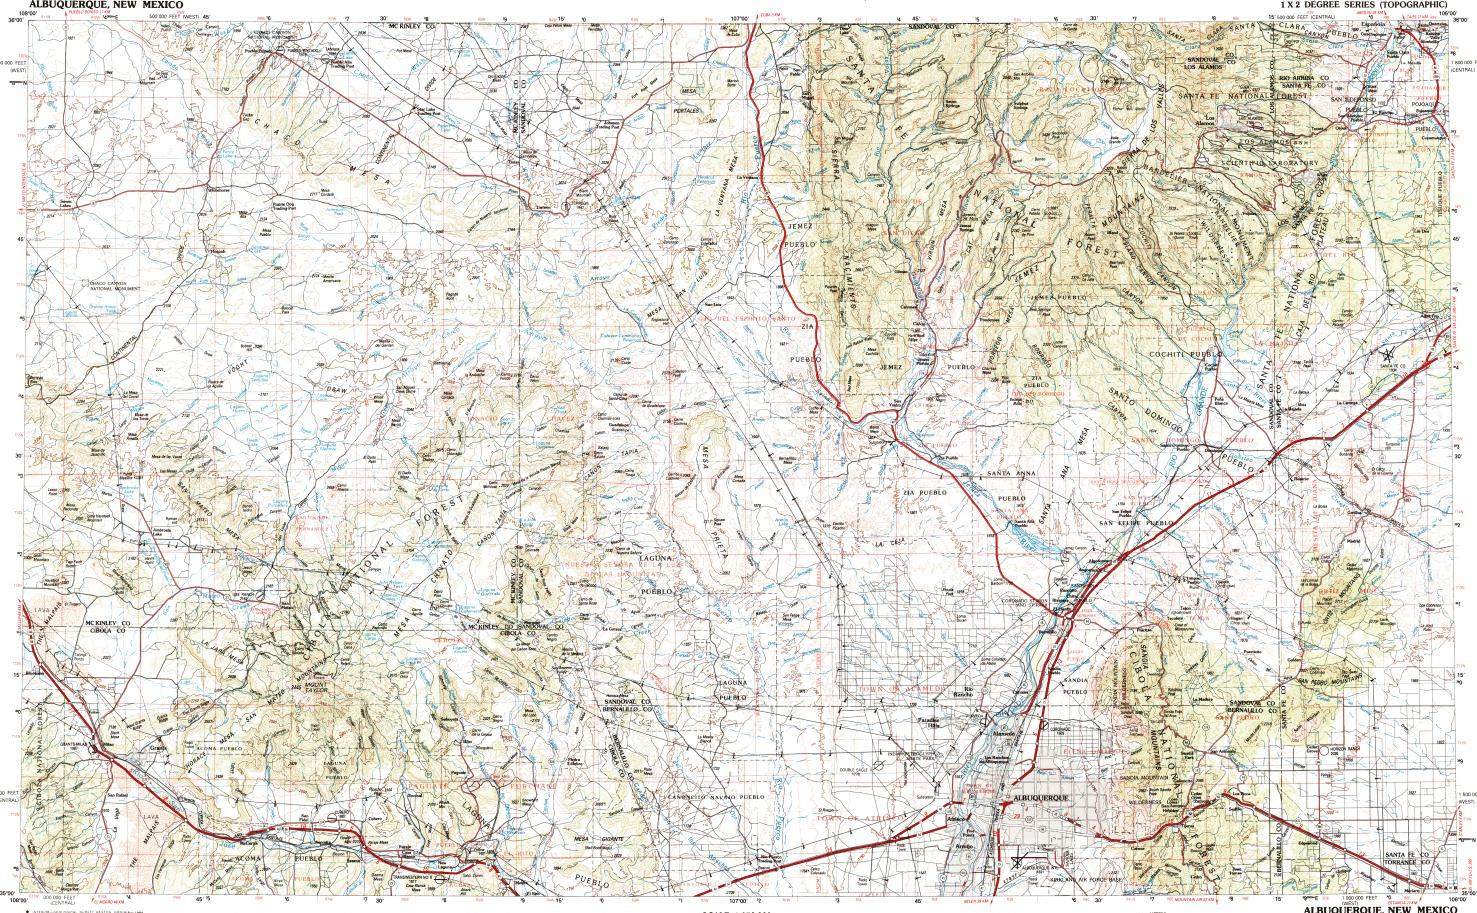 Download topographic map in area of Albuquerque, South Valley, Rio